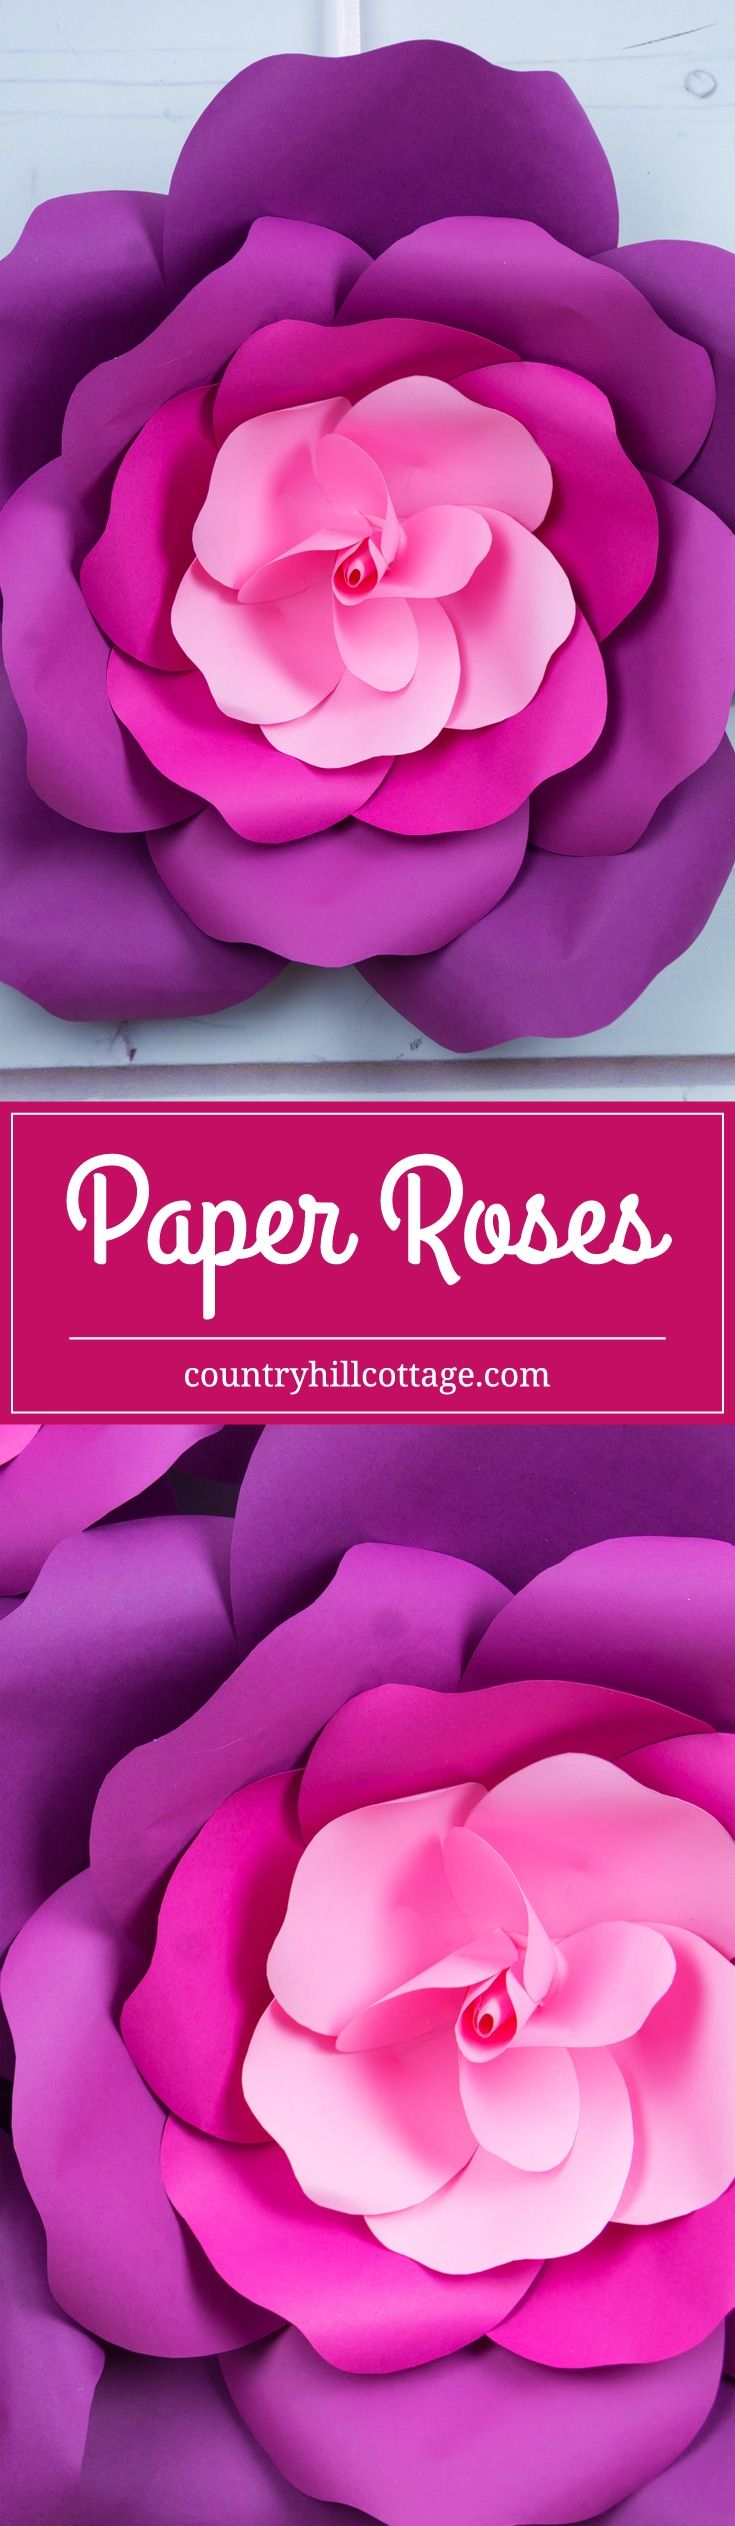 Giant paper roses in 5 easy steps free printable template paper learn to craft giant paper roses in 5 easy steps and get a free printable template for the petals papercrafts paperflowers countryhillcottage mightylinksfo